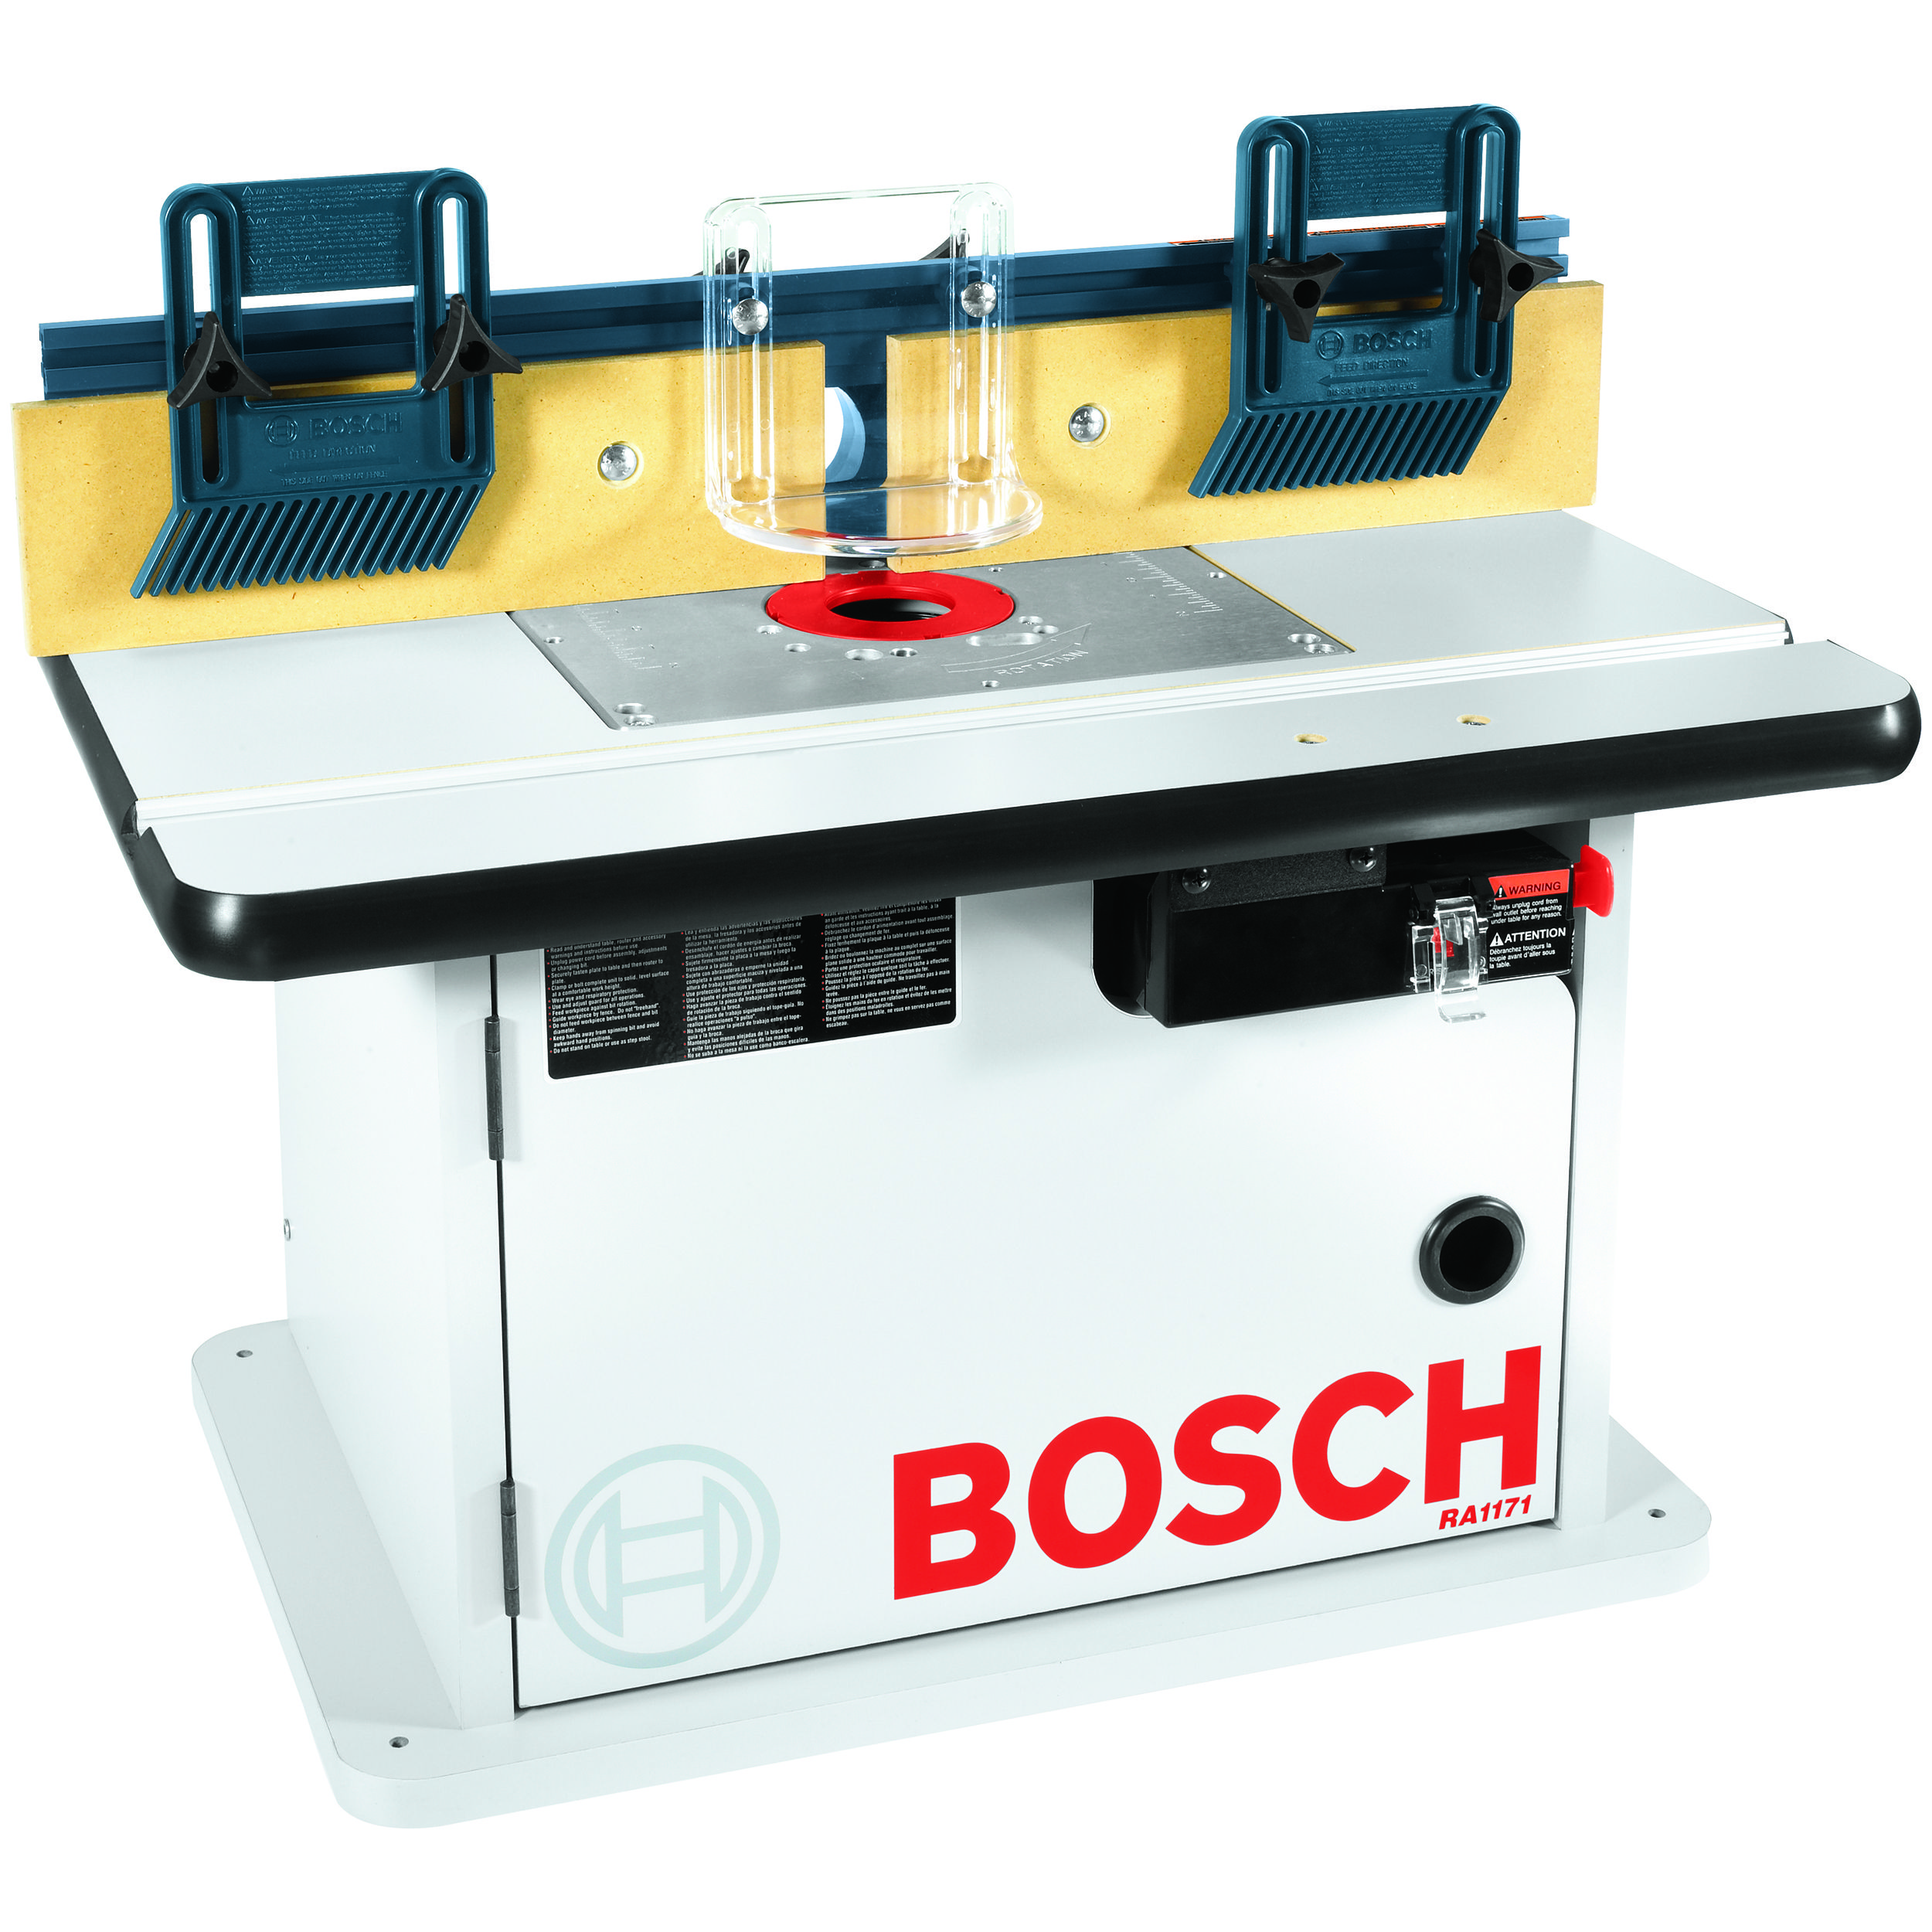 Bosch Bench Top Router Table Top Routers Router Table